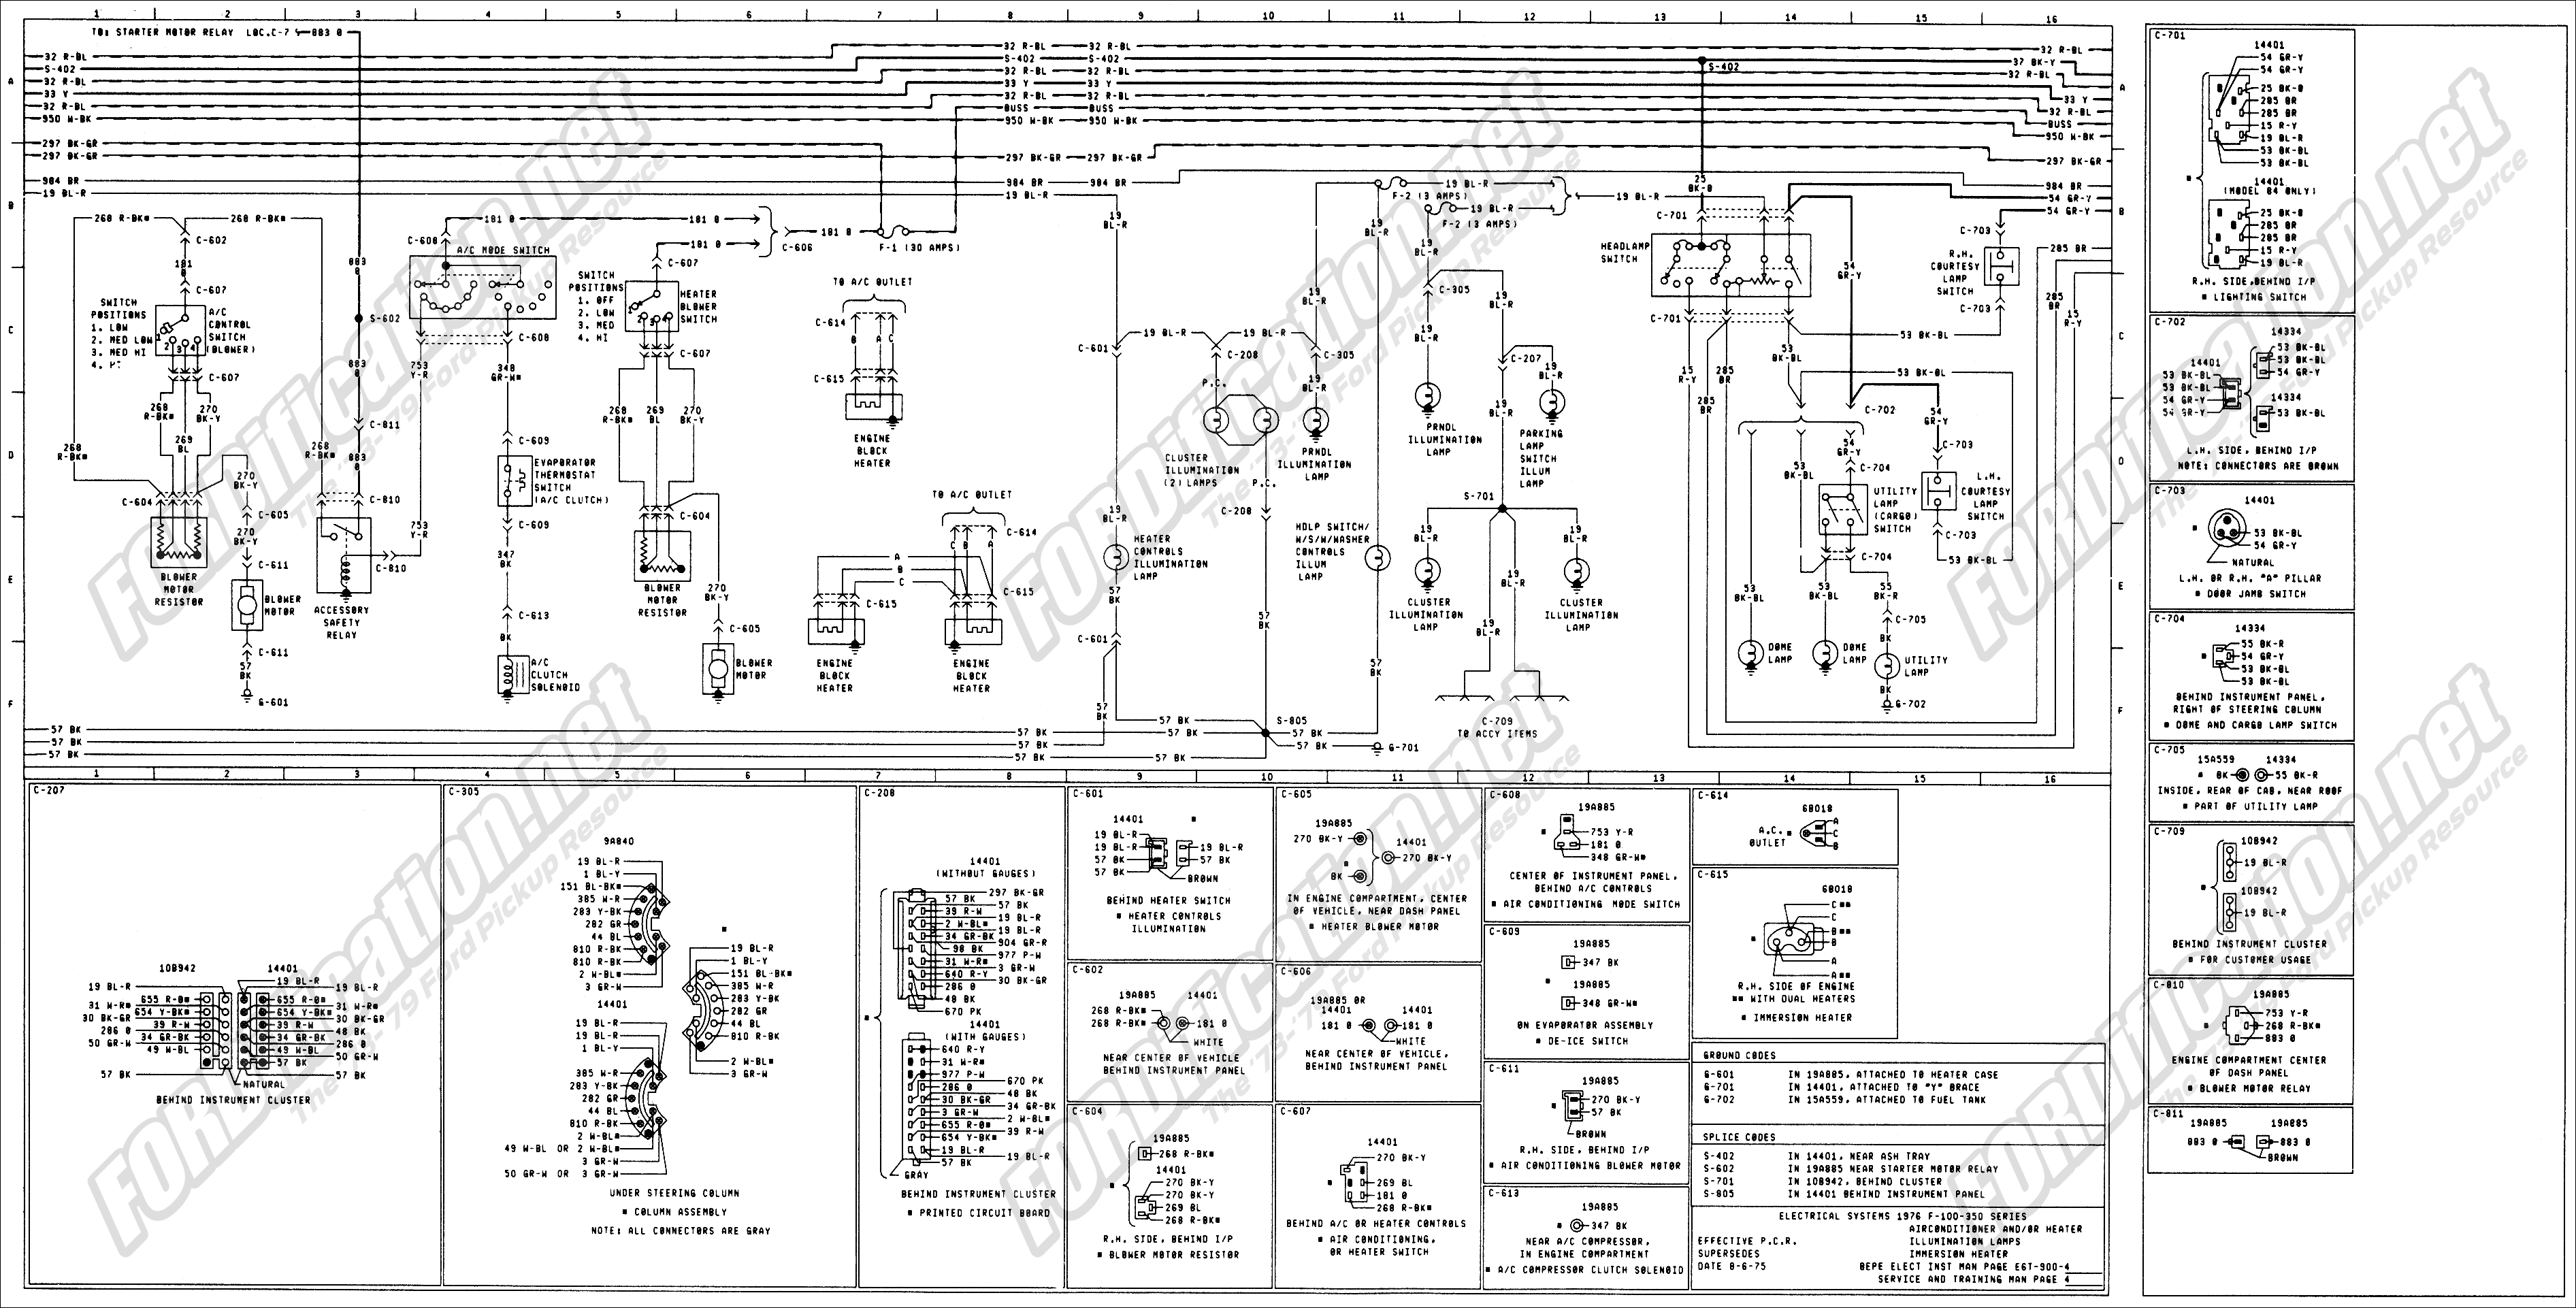 wiring_76master_4of9 1973 1979 ford truck wiring diagrams & schematics fordification net 1978 Ford F-150 Wiring Diagram at panicattacktreatment.co